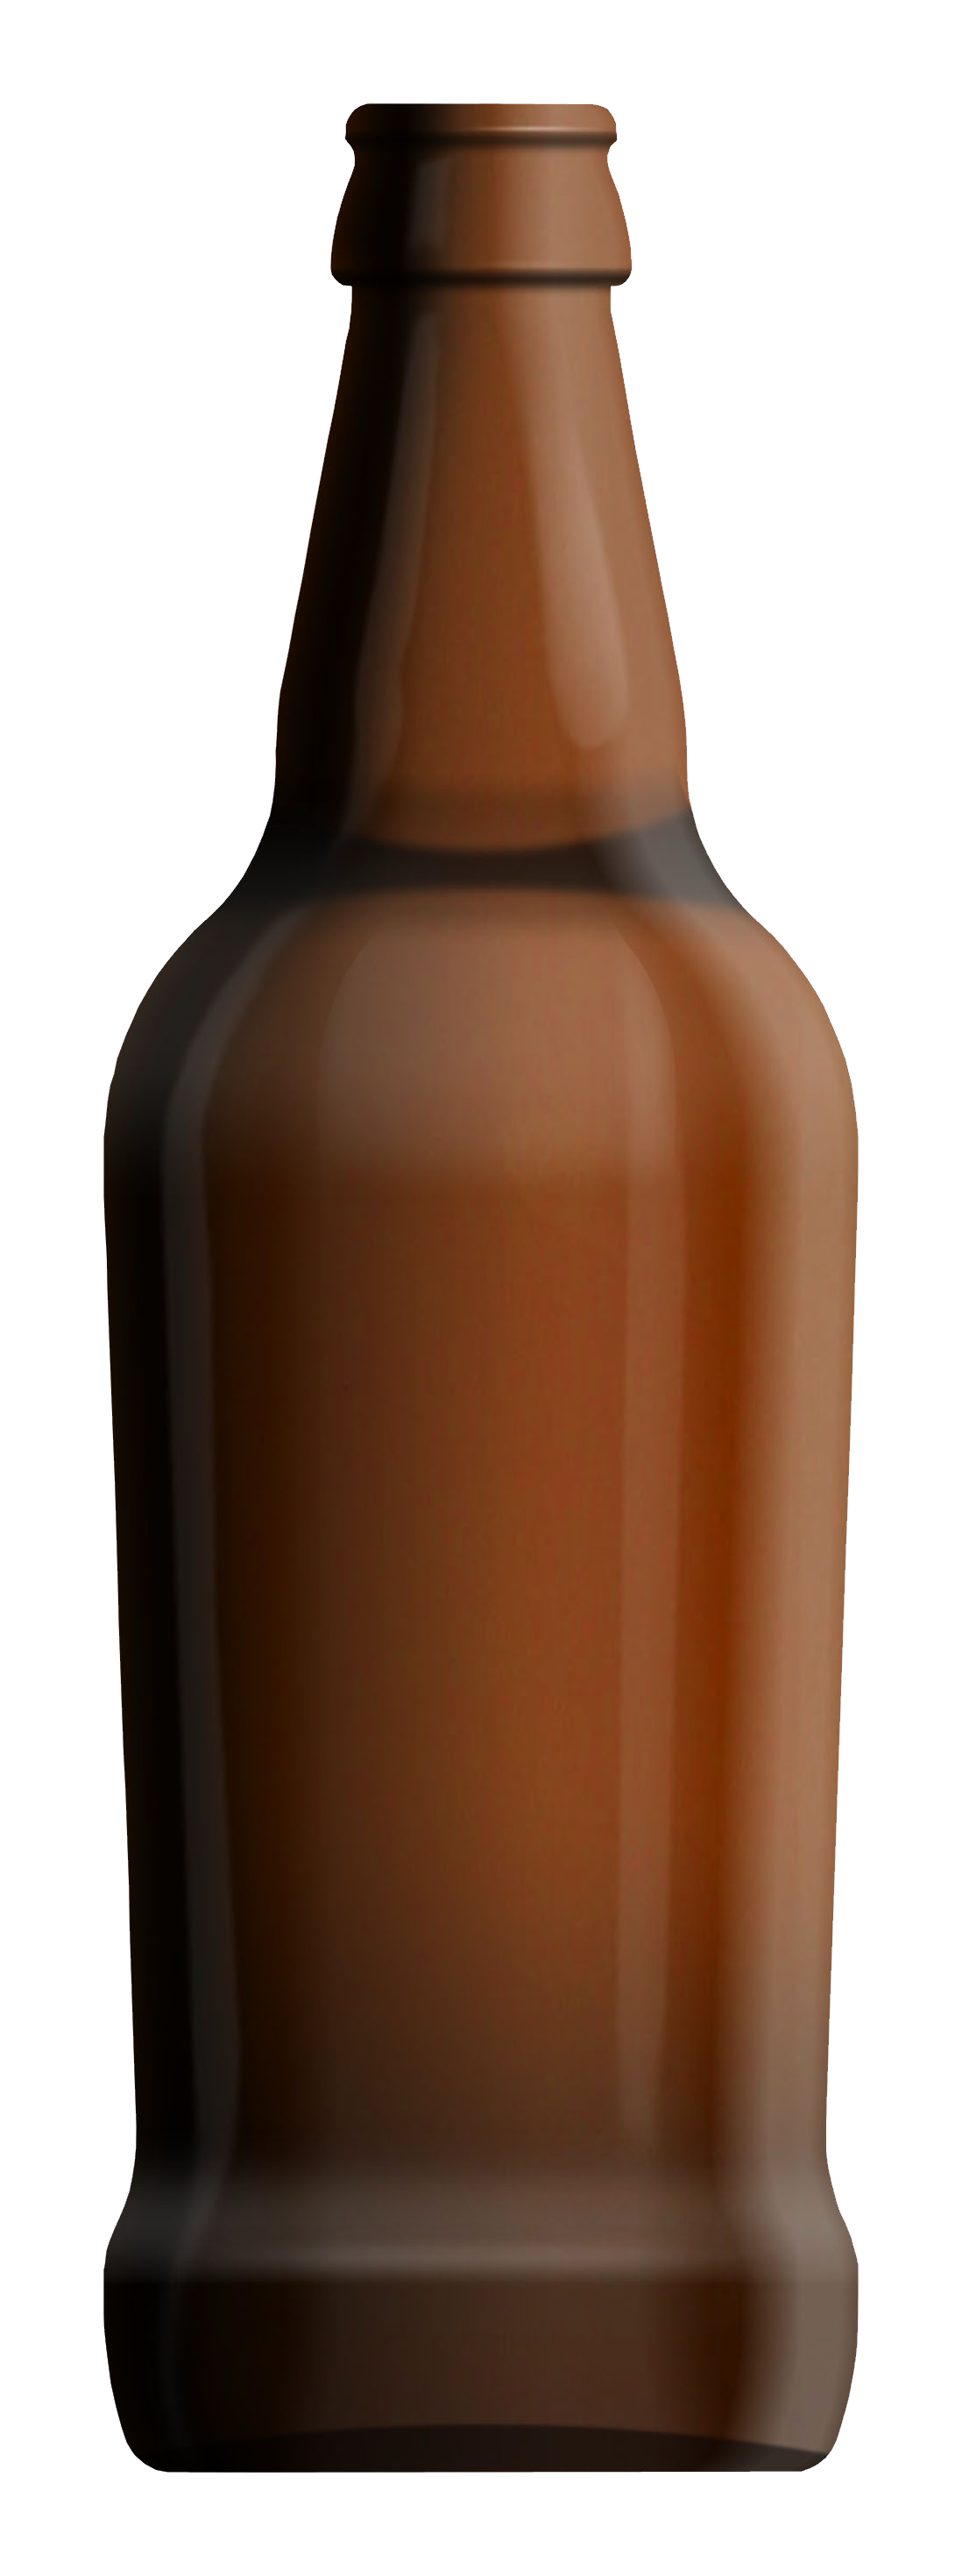 Transparent beer jar. Bottle png images free